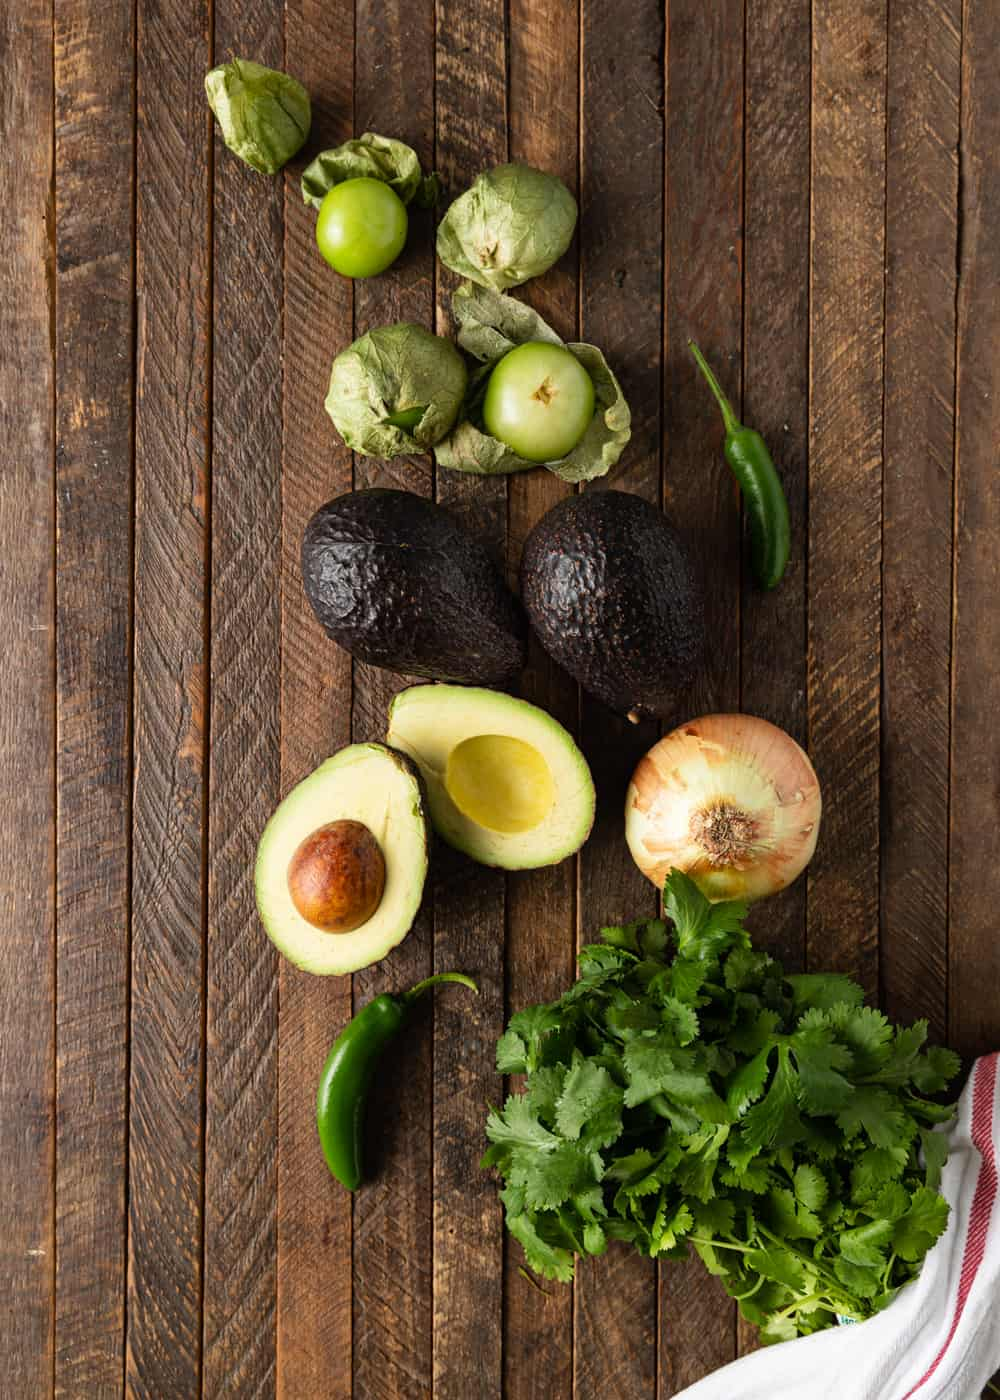 ingredients for making avocado salsa recipe